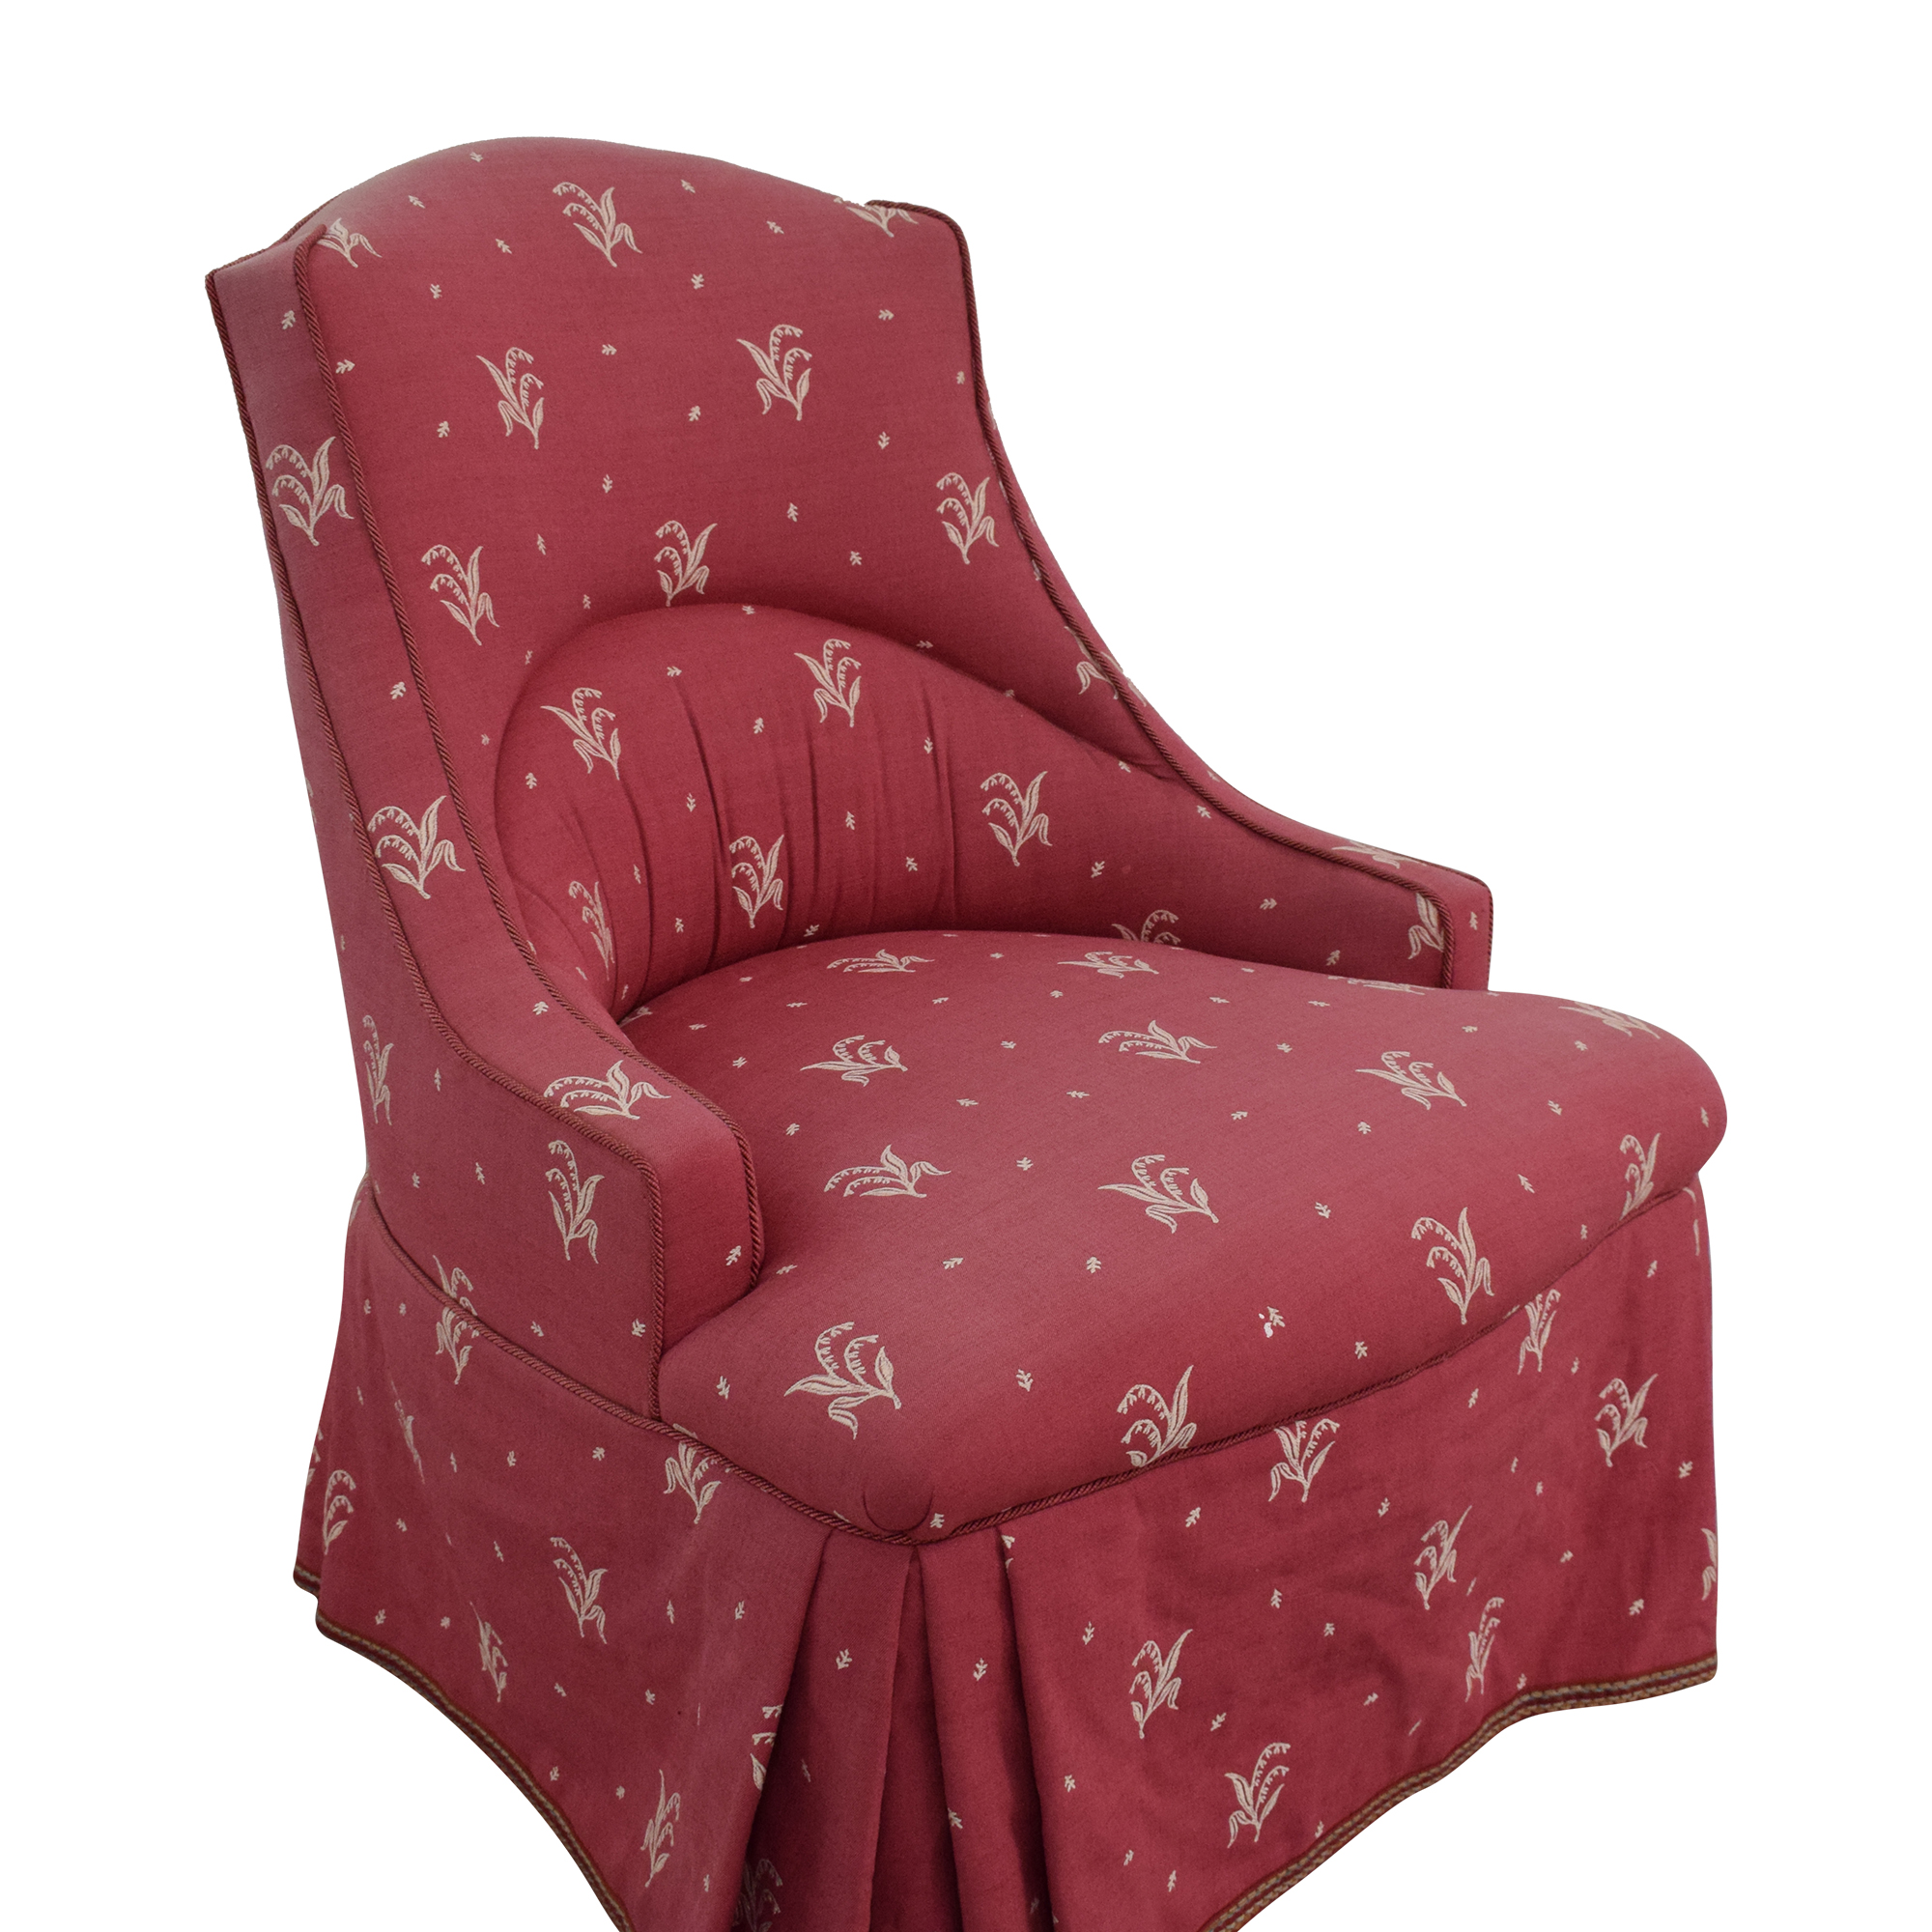 Patterned Skirted Slipper Chair coupon